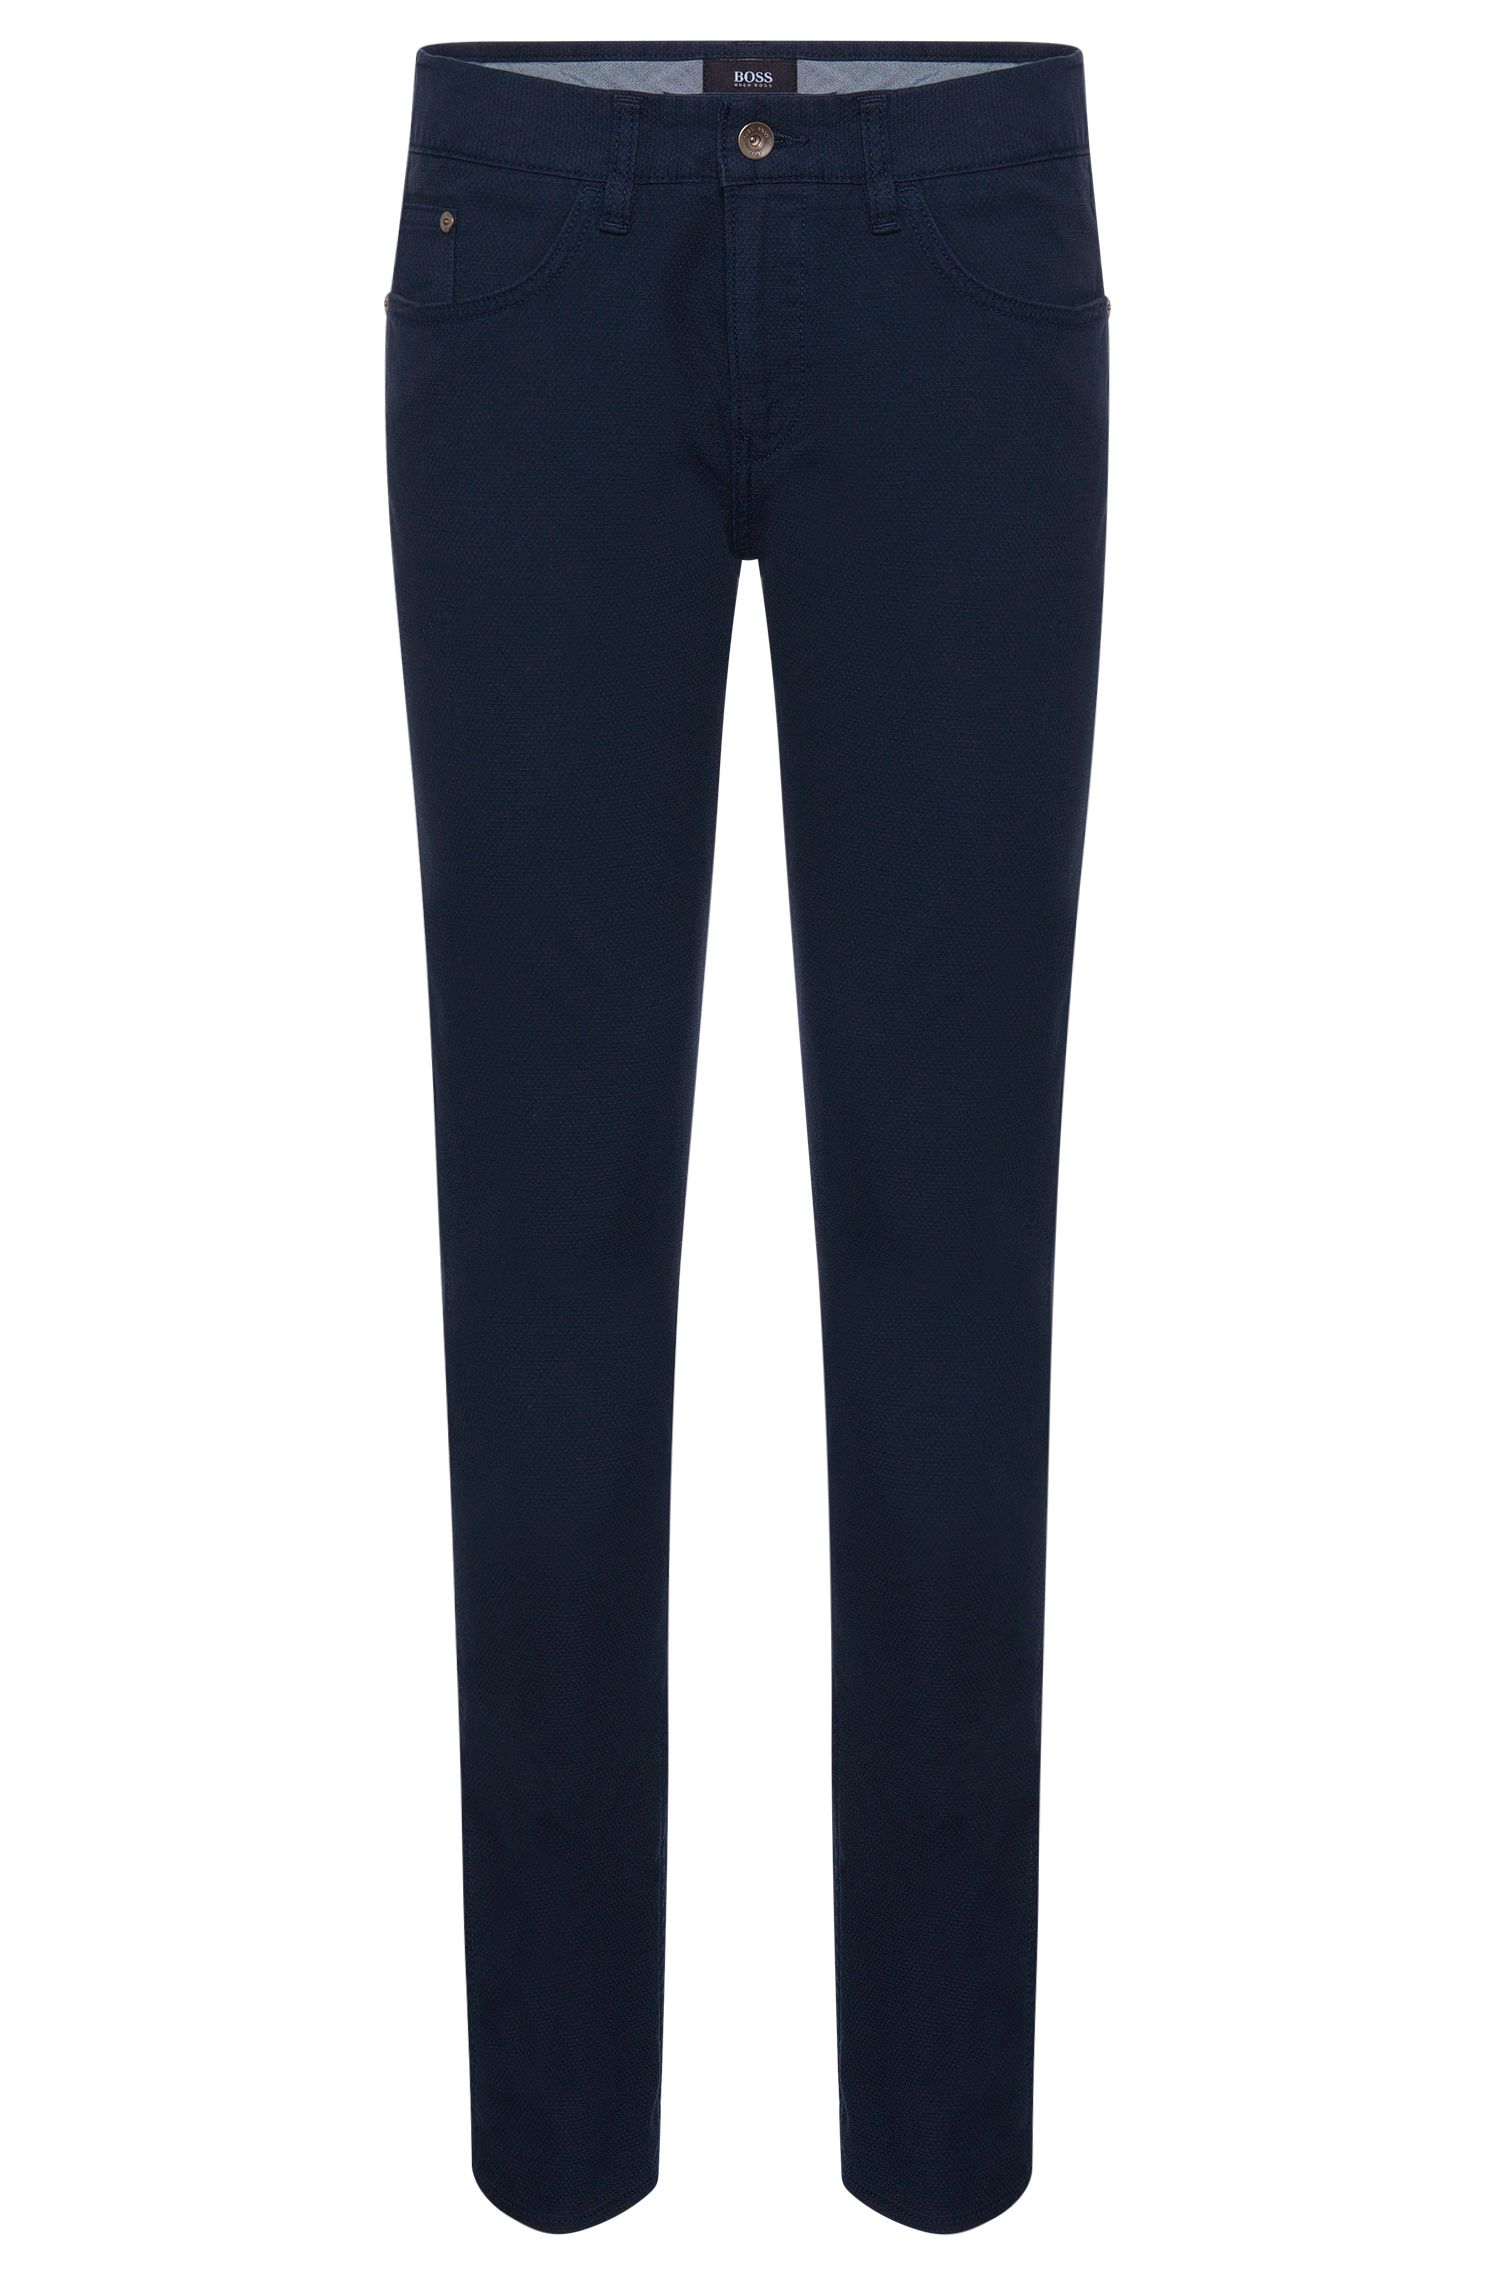 'Delaware' | Slim Fit, Stretch Cotton Patterned Trousers